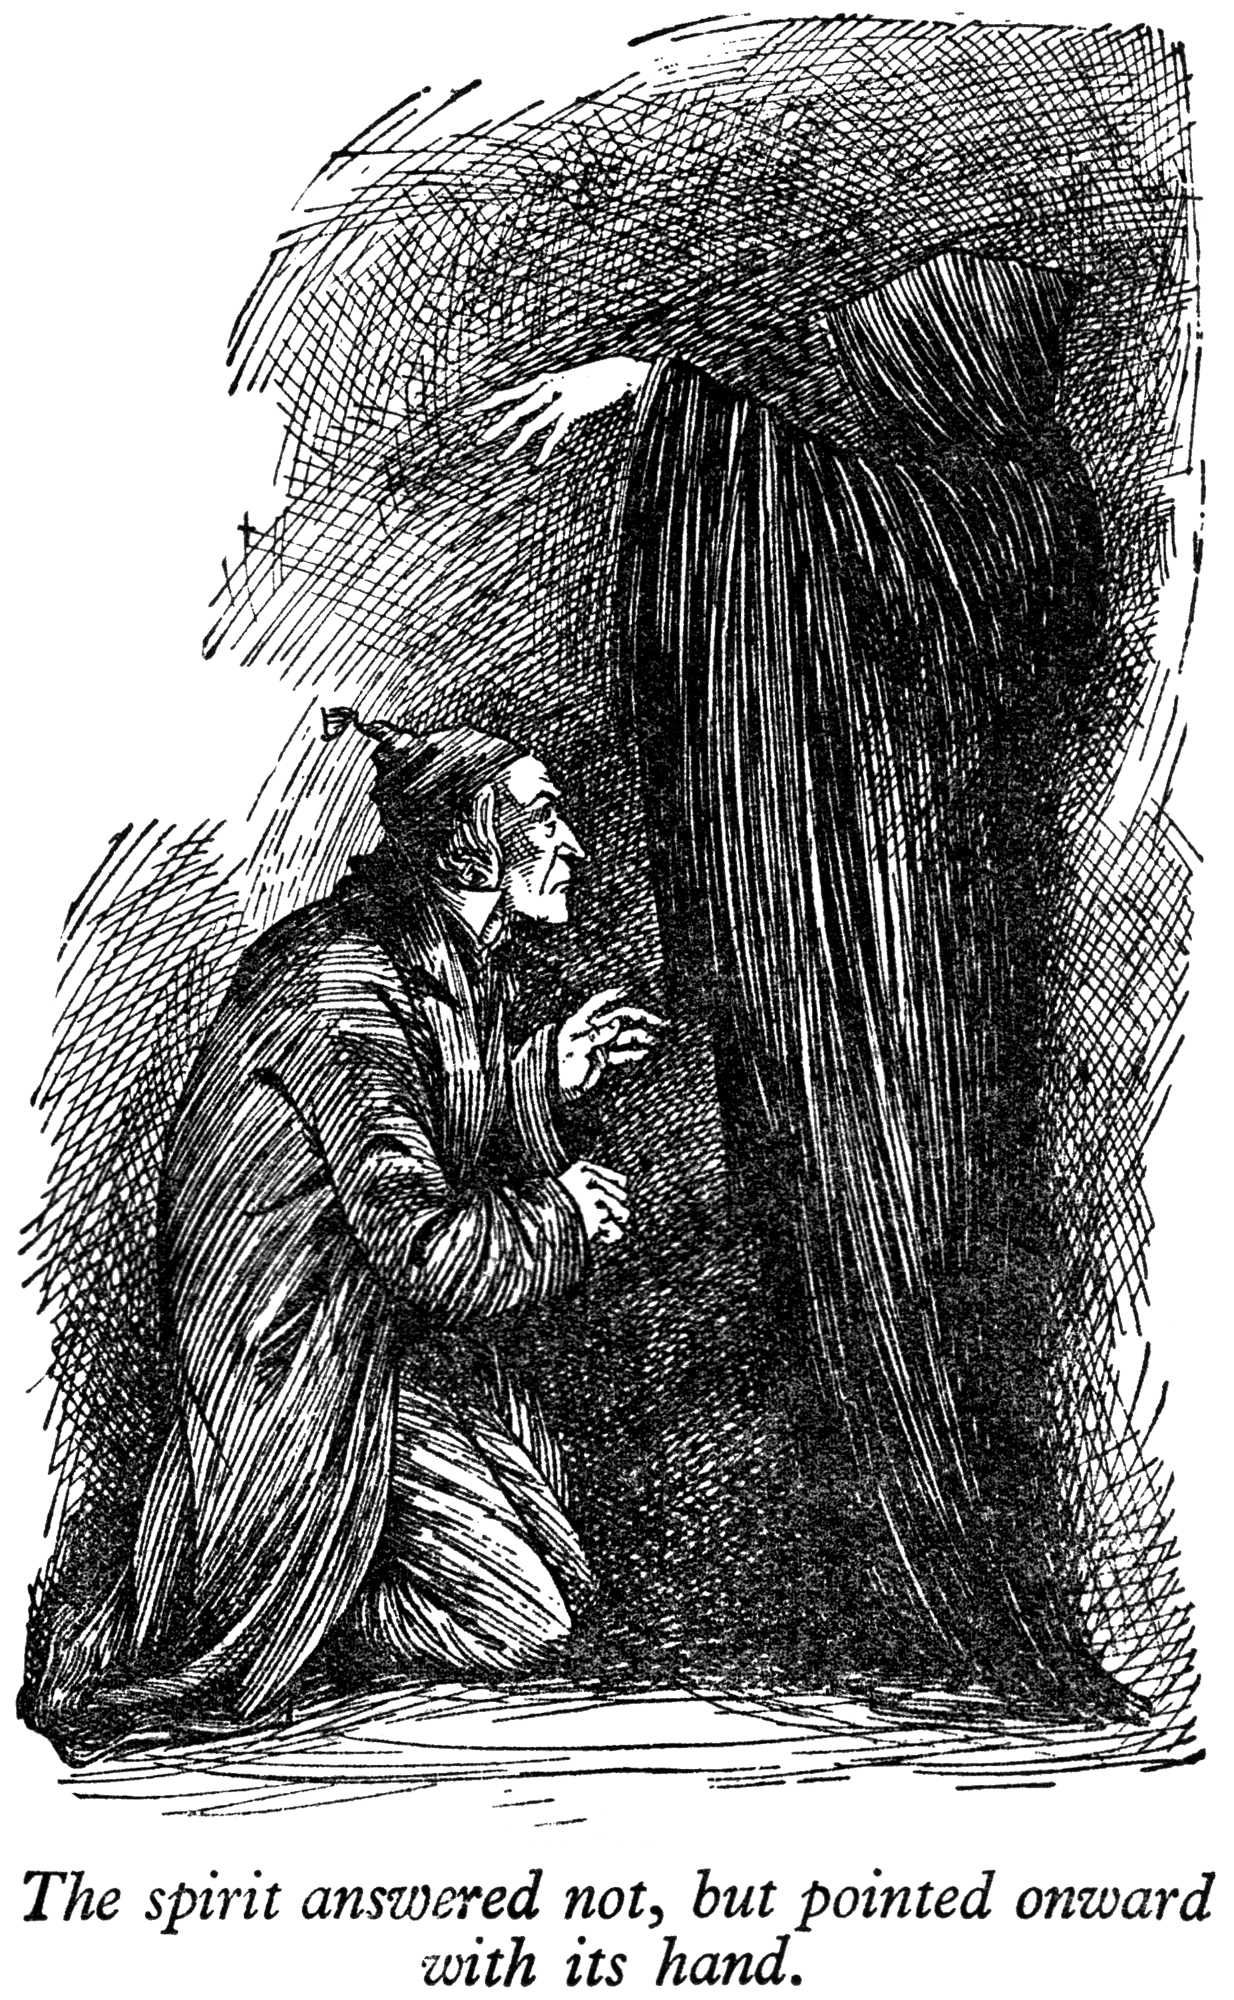 'A Christmas Carol' Stave 4, Part 1 - Charles Dickens